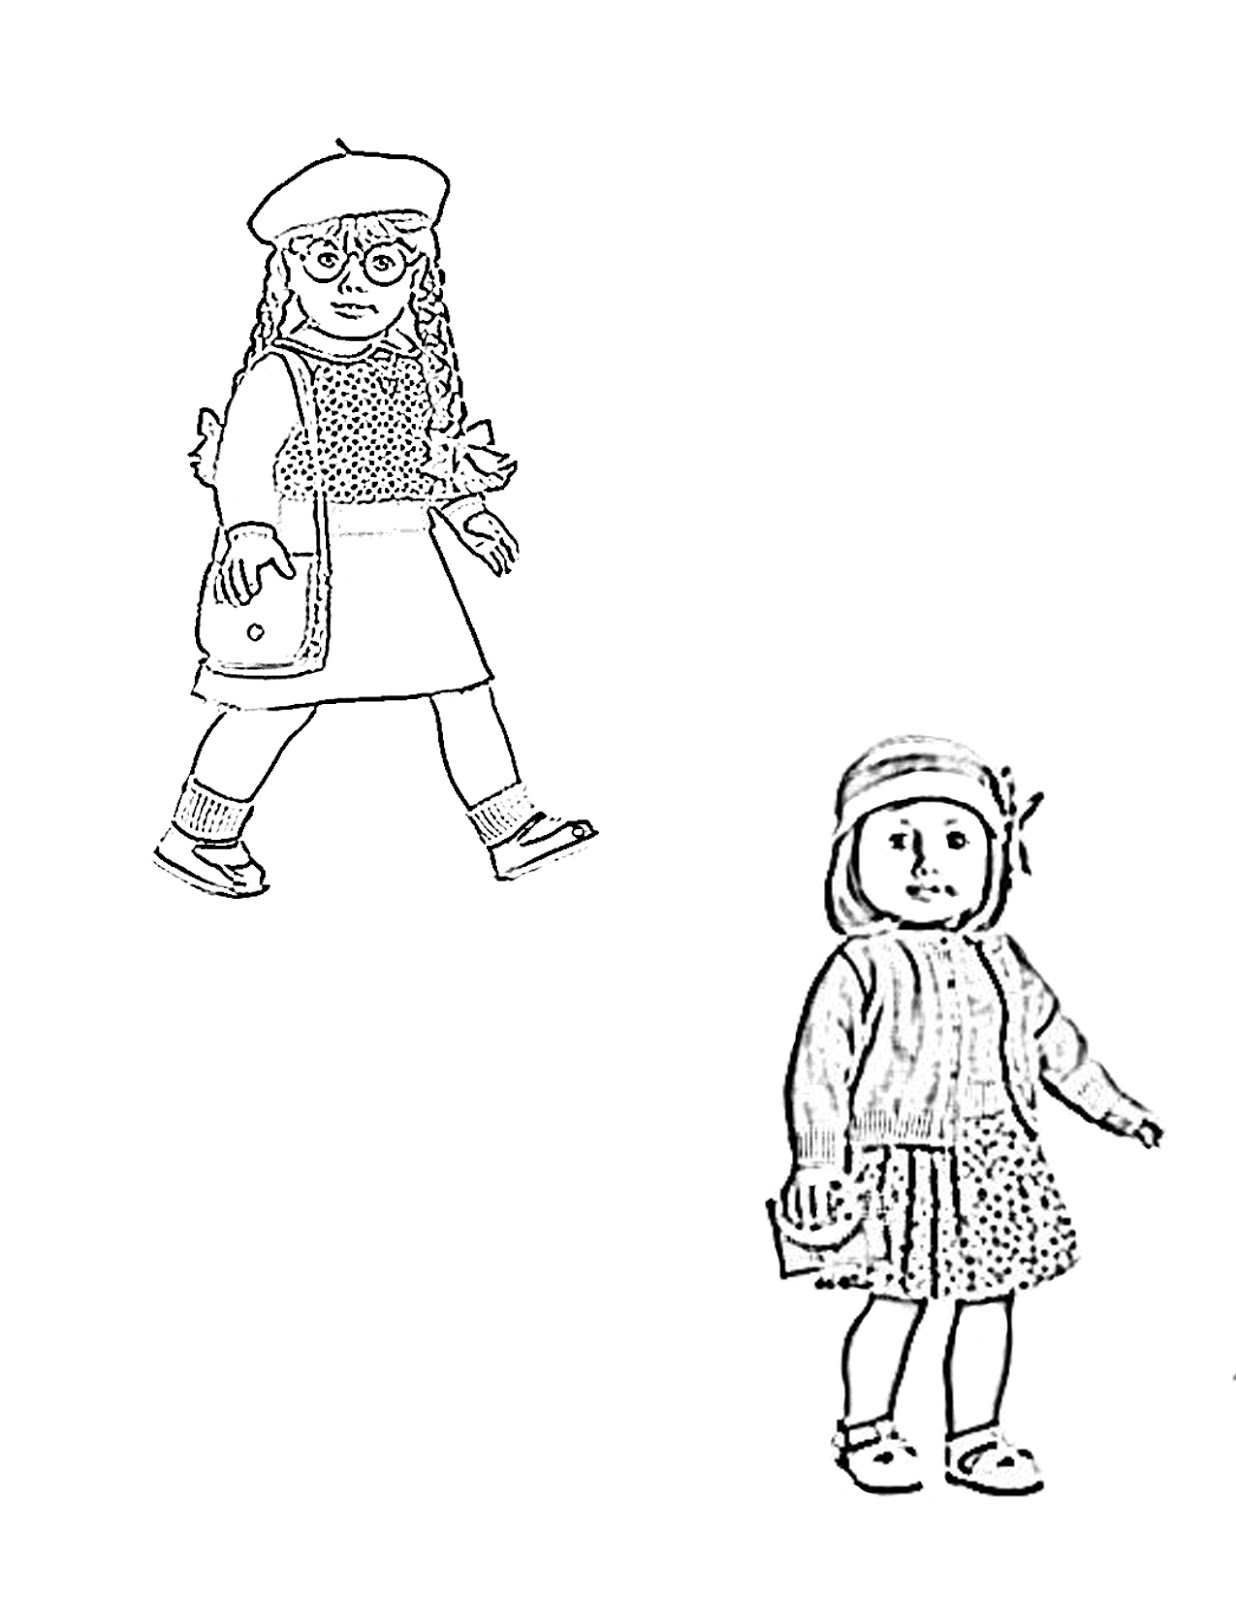 pictures of american girl dolls to color american girl doll coloring pages free printable american color dolls american of to pictures girl